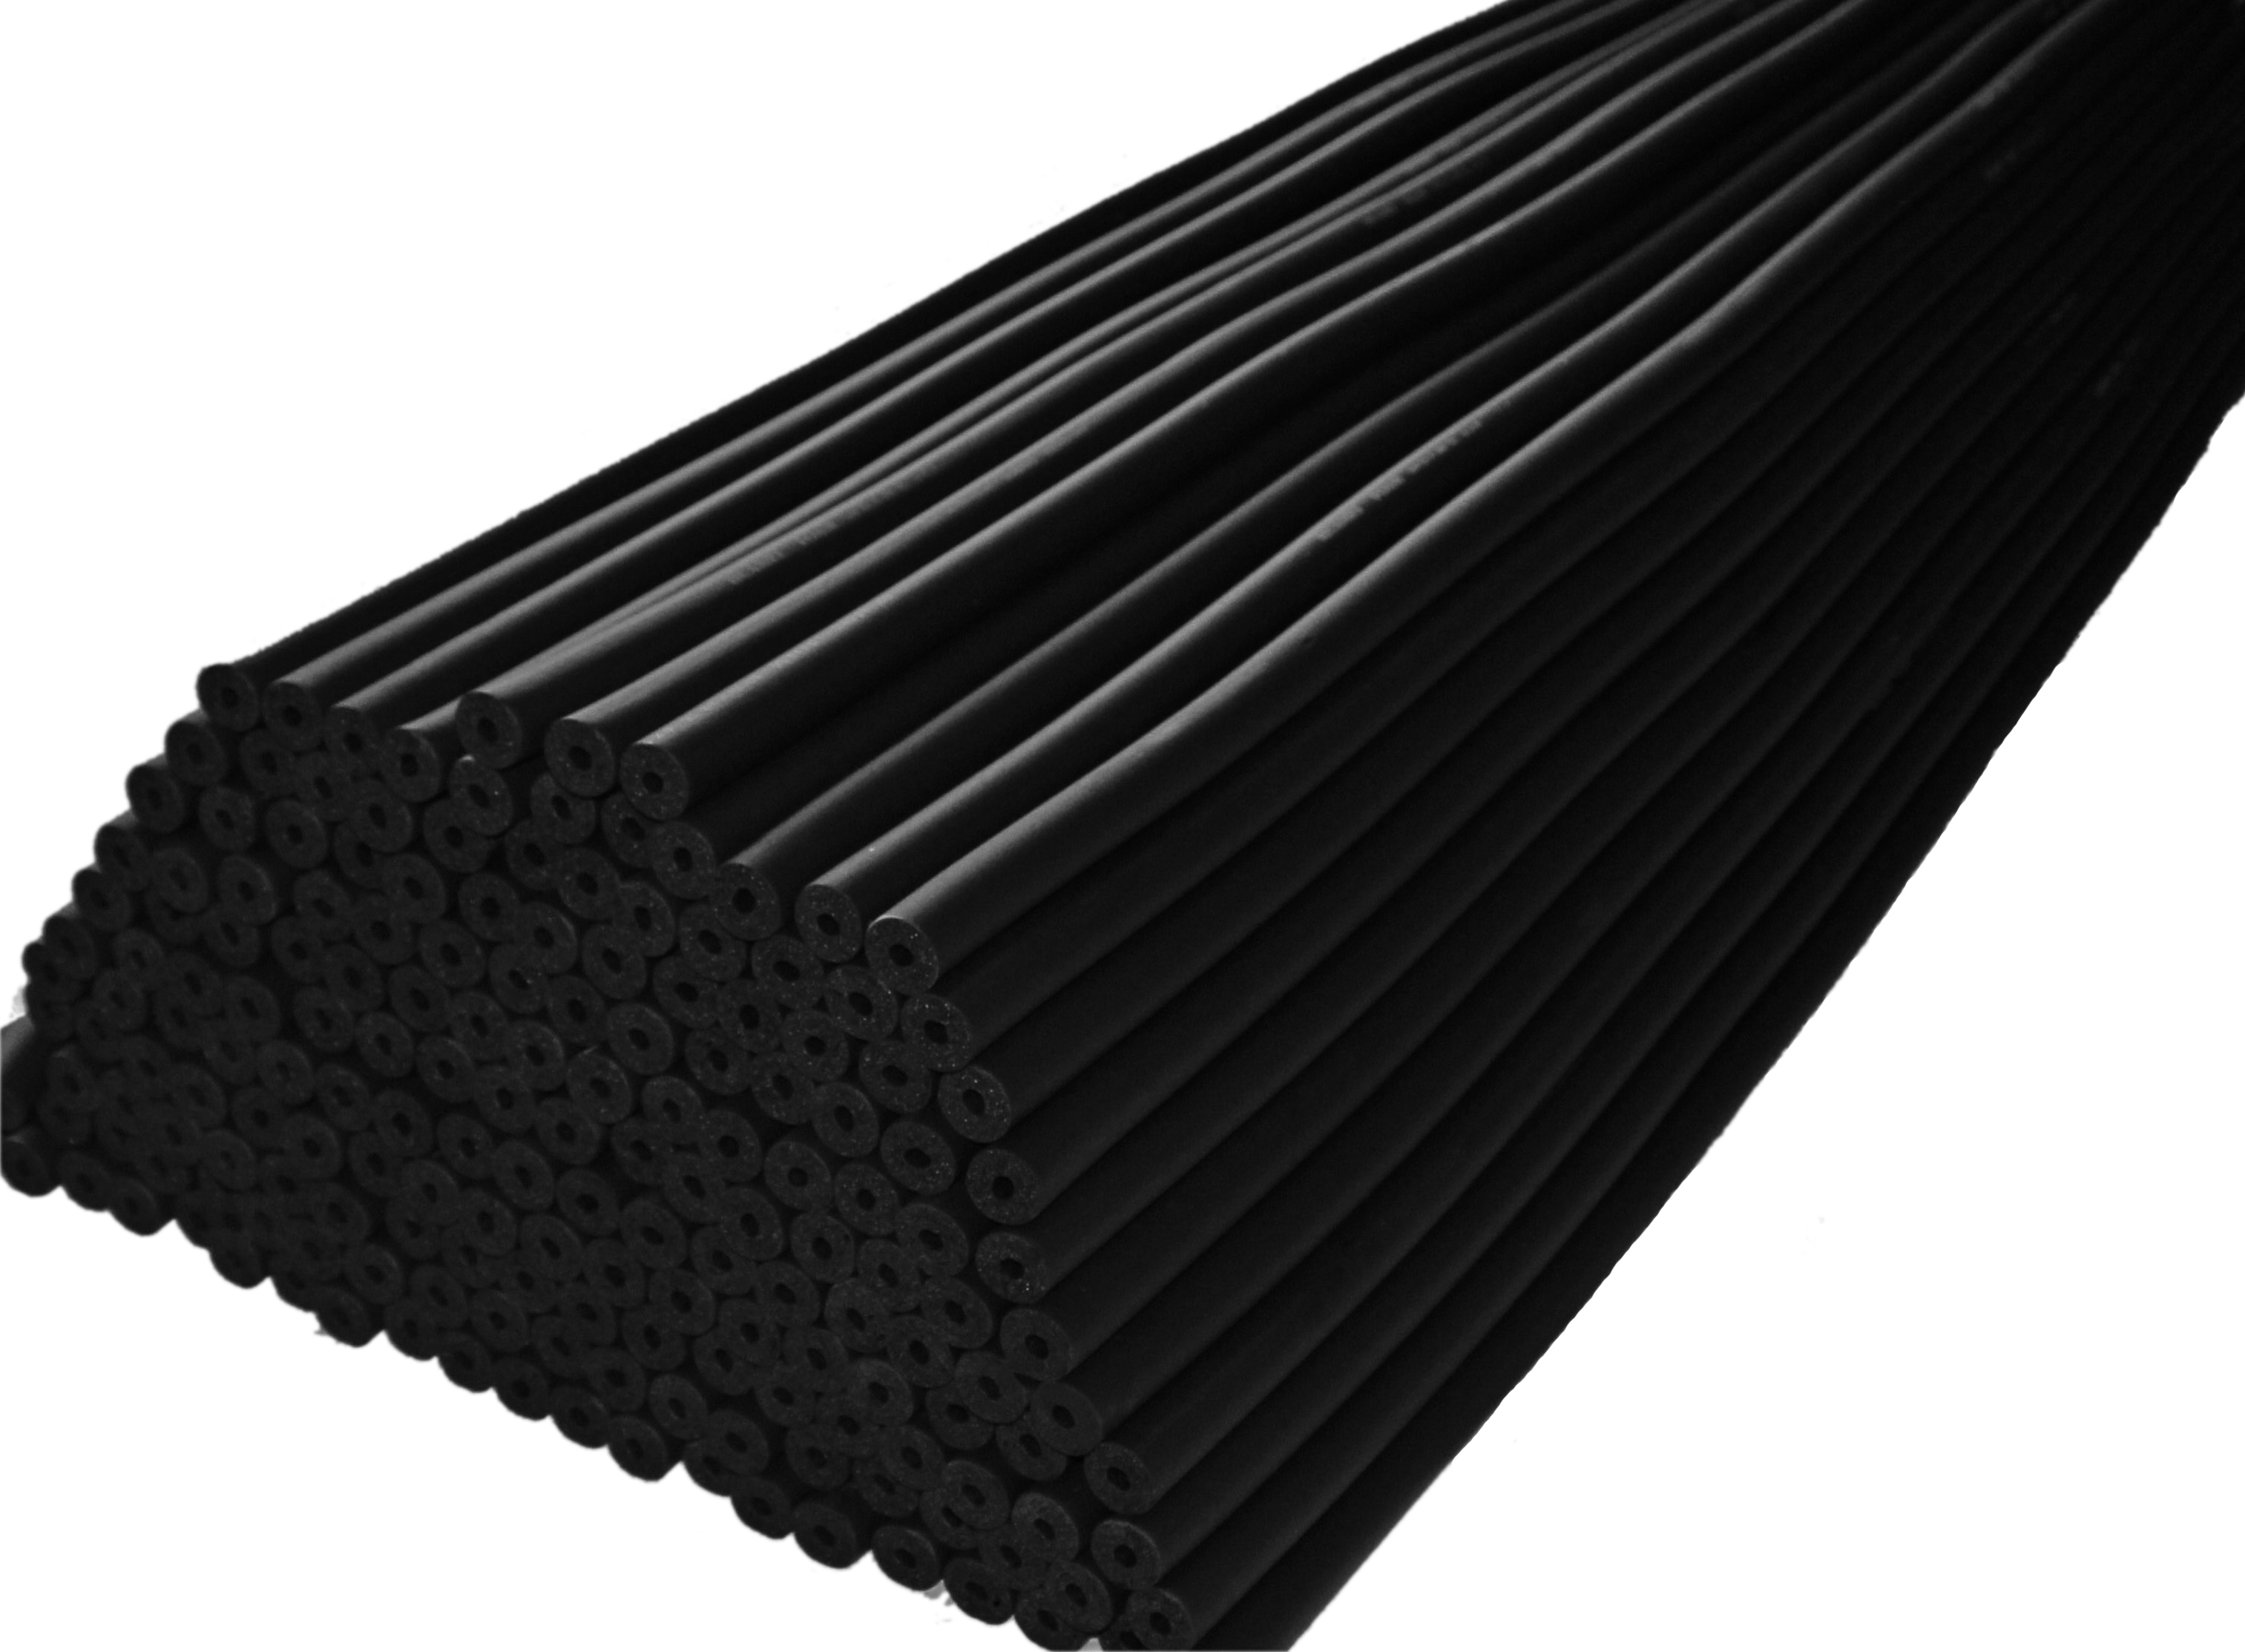 Flexible Elastomeric Thermal Insulation Rubber Plastic Insulation